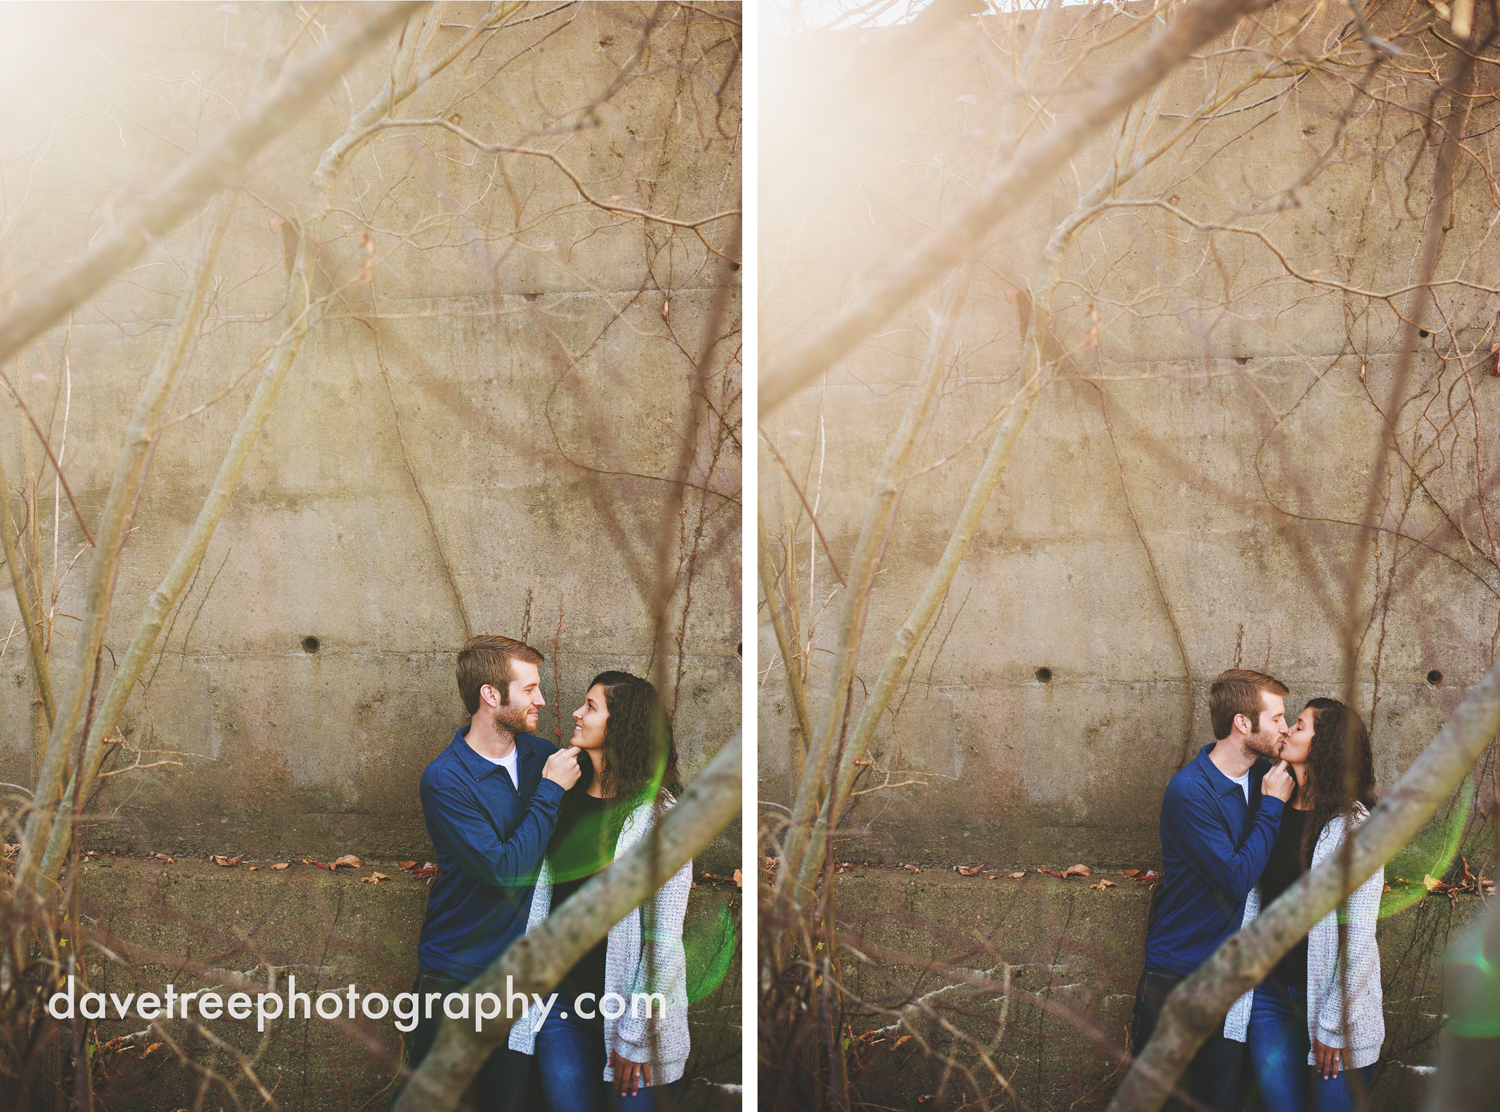 quincy_engagement_photographer_coldwater_engagement_photographer_06.jpg